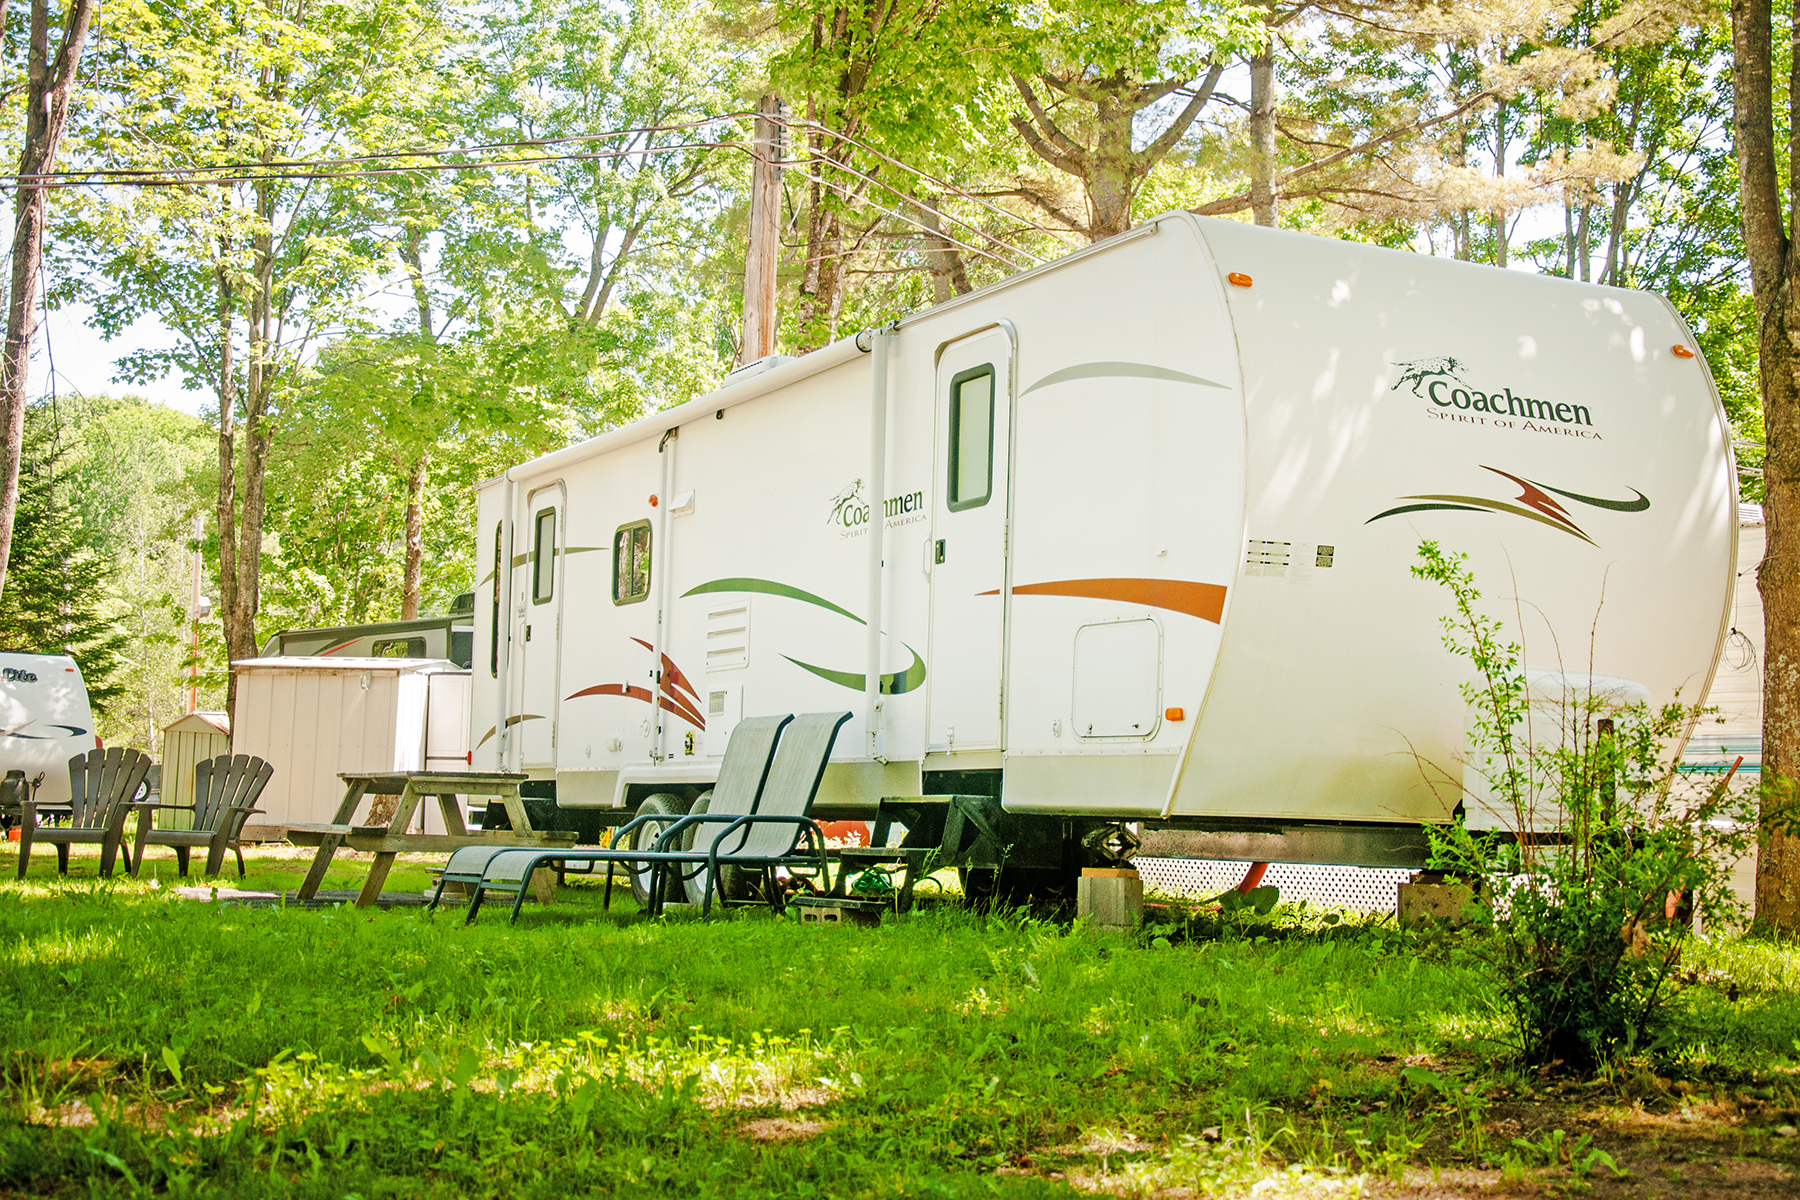 More details about trailer rental - Accommodations at Camping Nature Plein Air